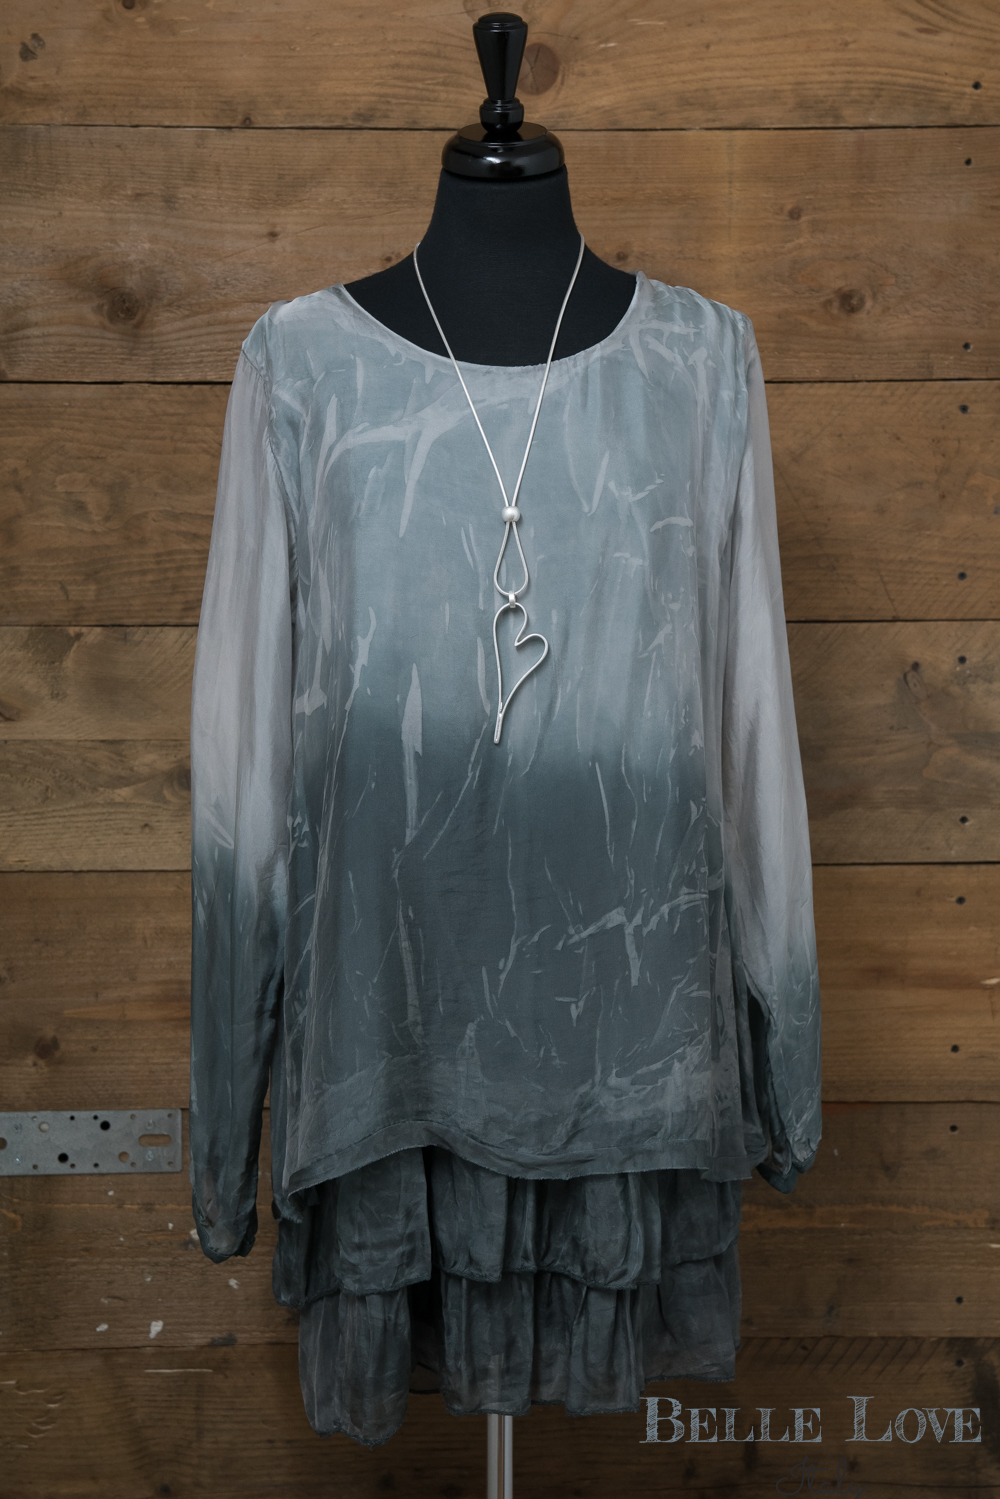 Belle Love Italy Oversize Layered Silk Top